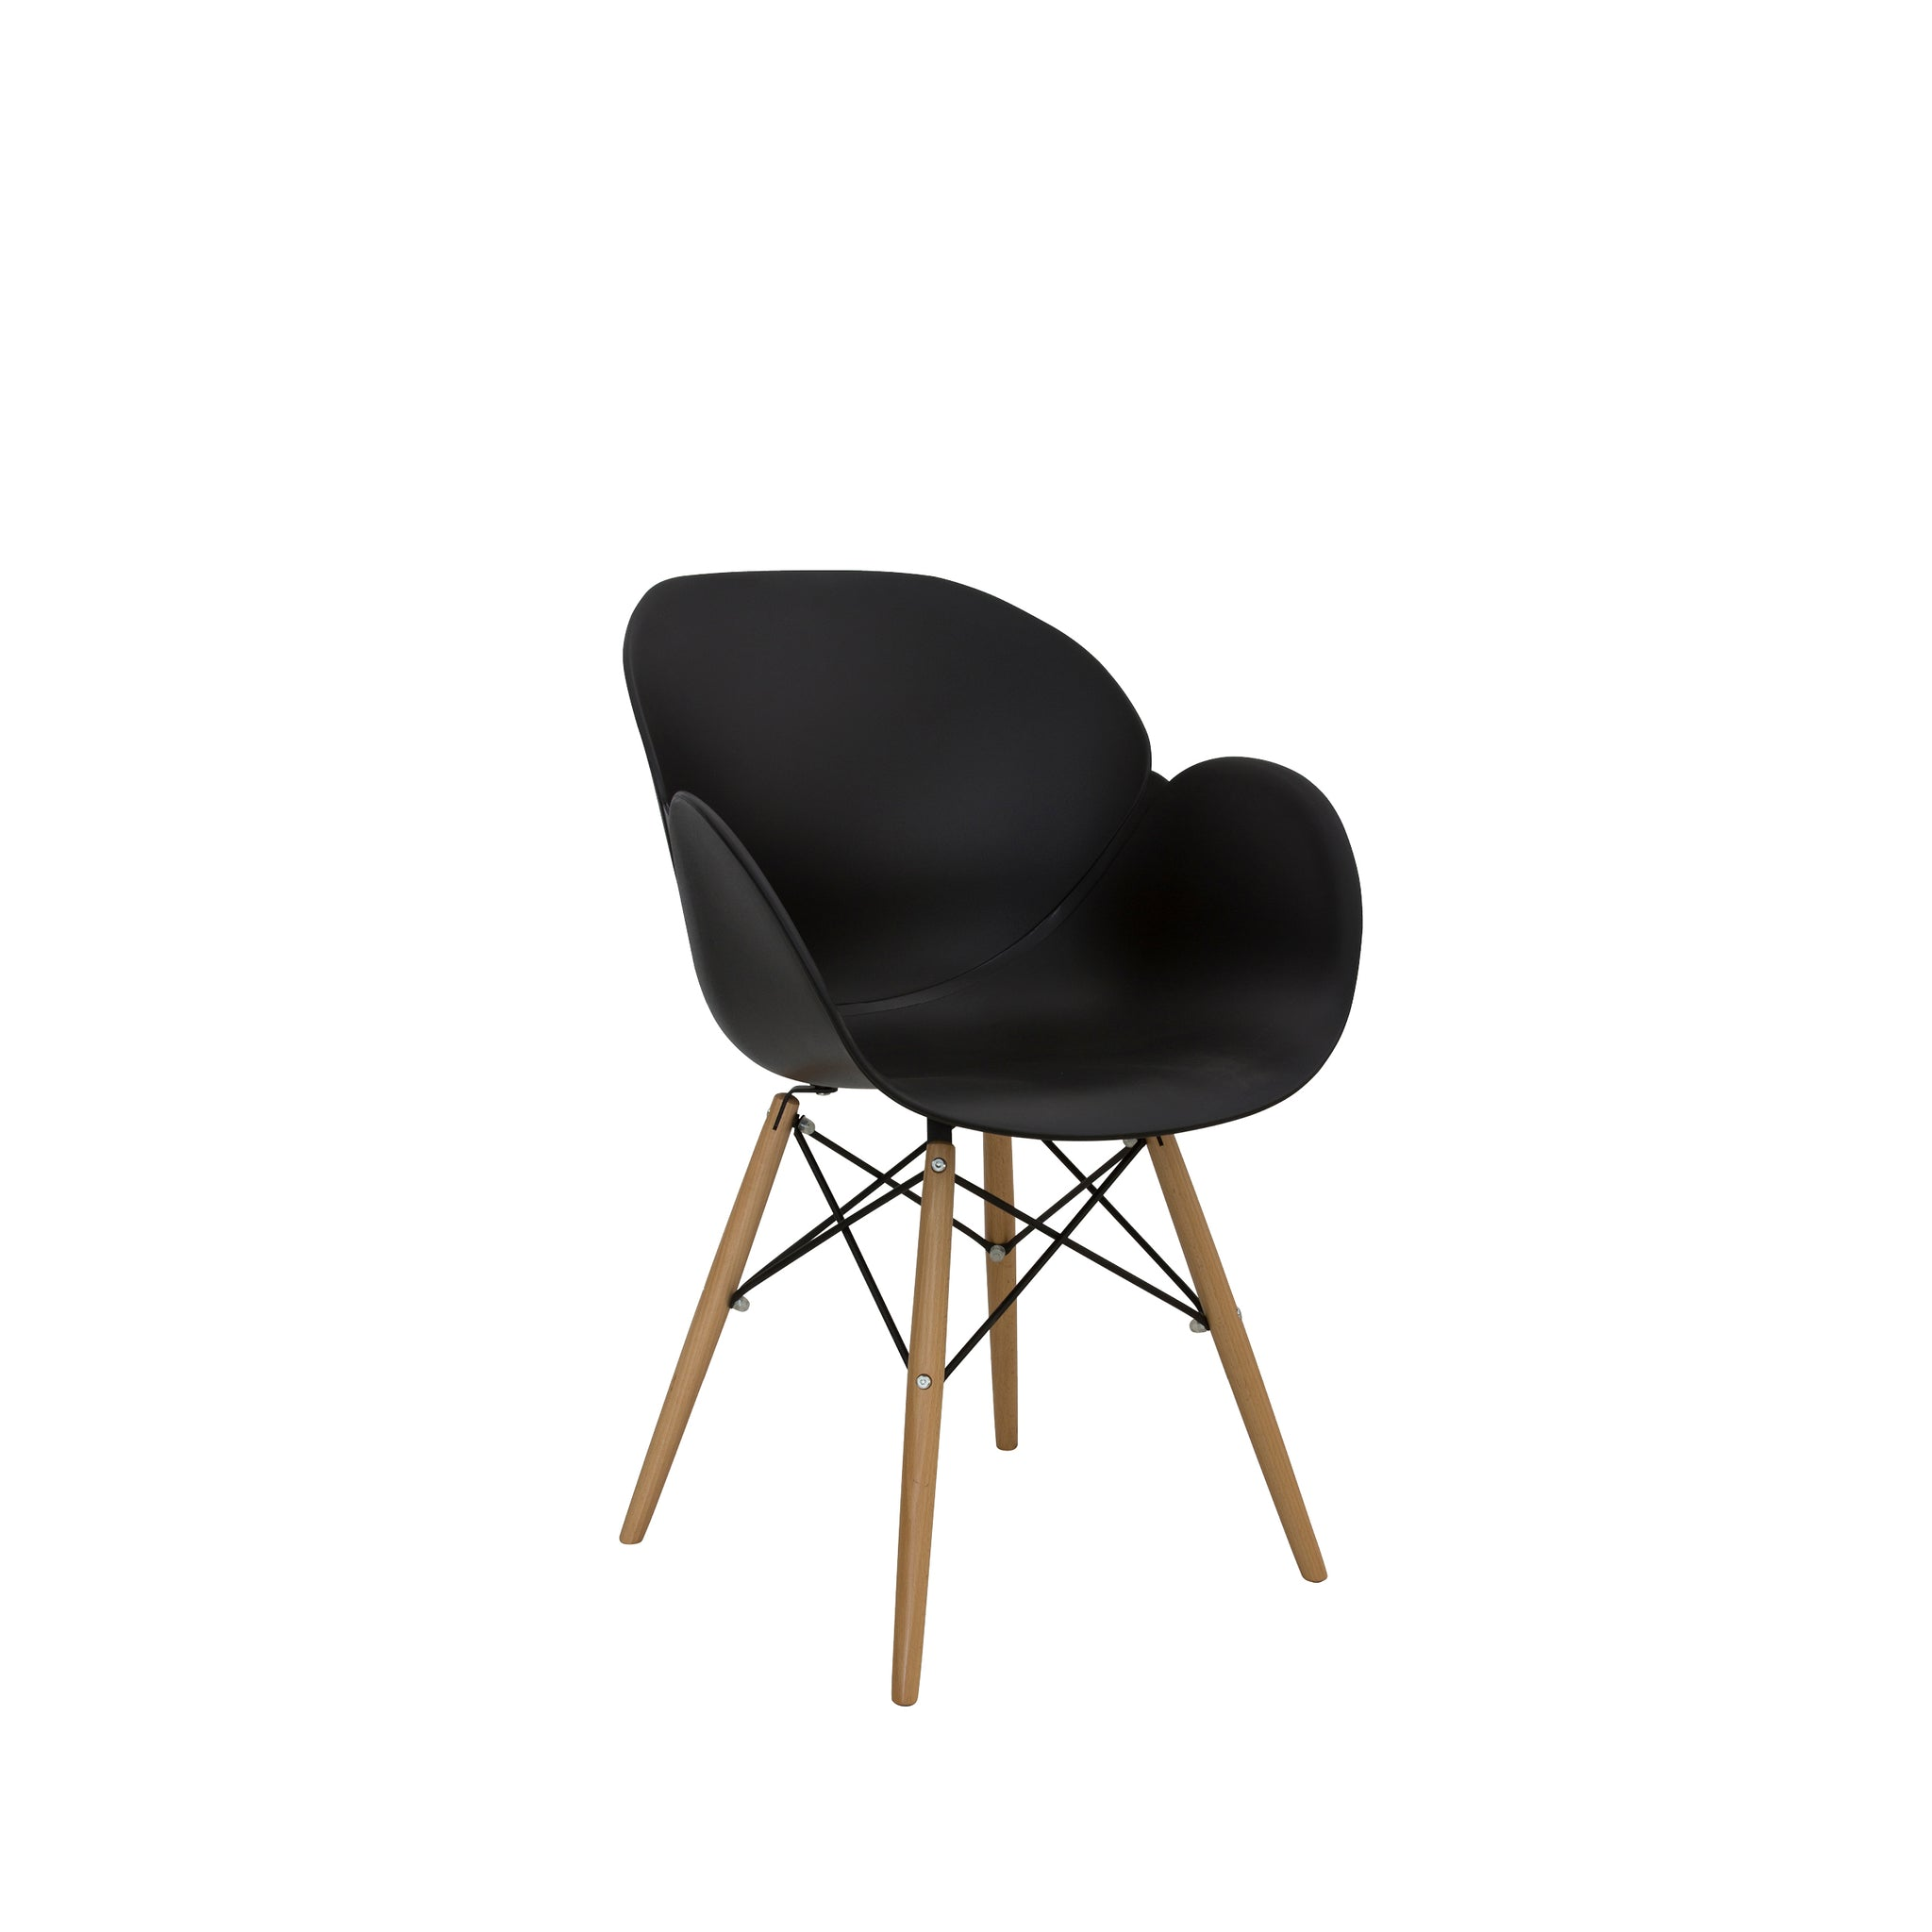 Hedcor Holly chair